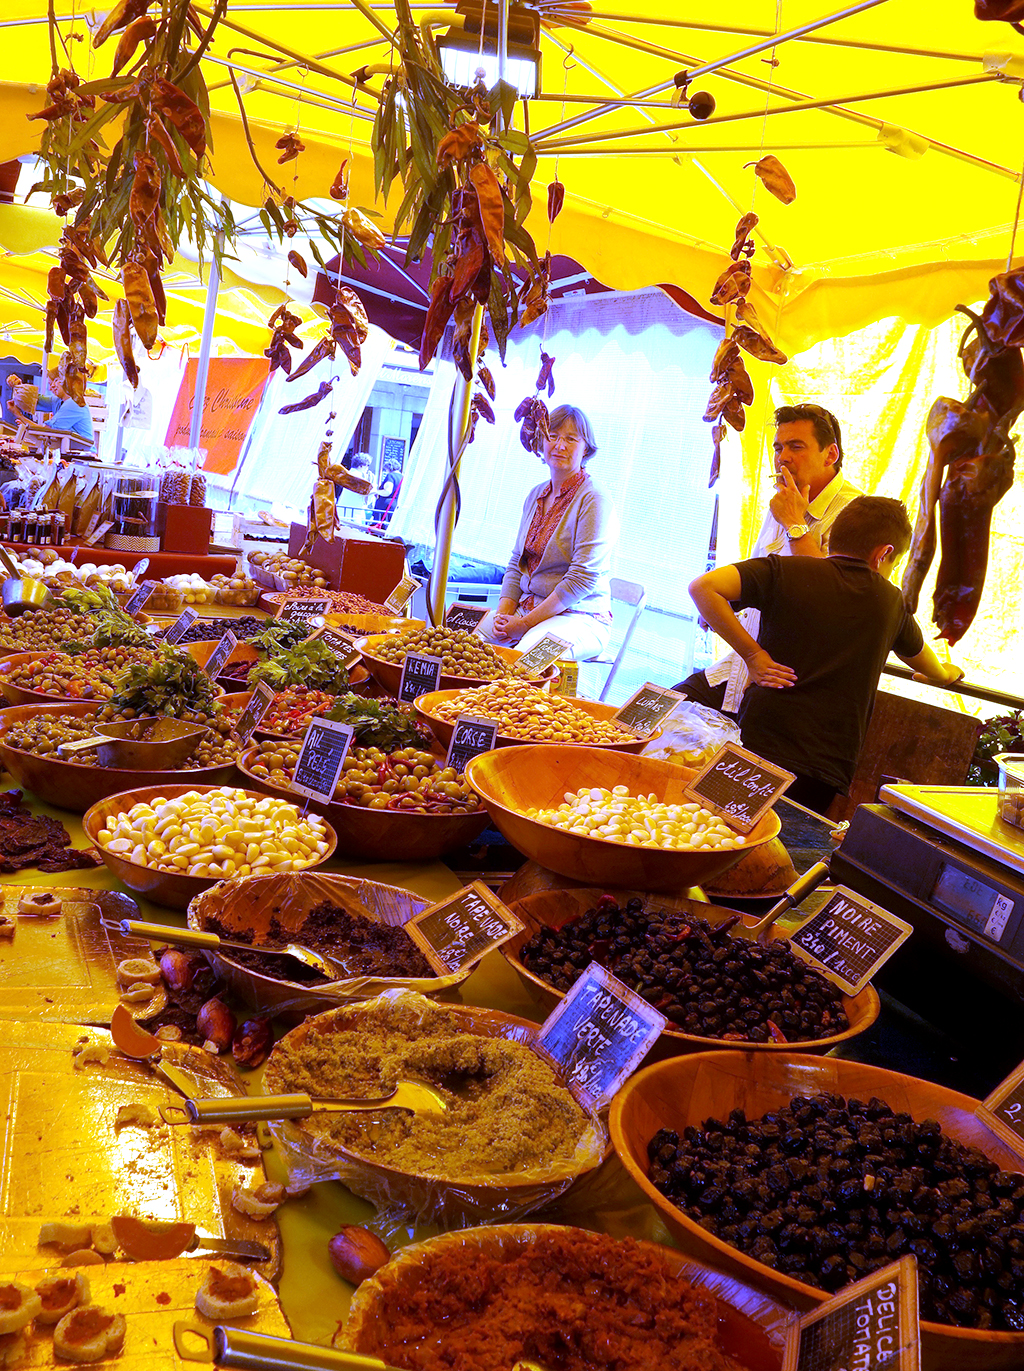 Olive vendor in Annecy